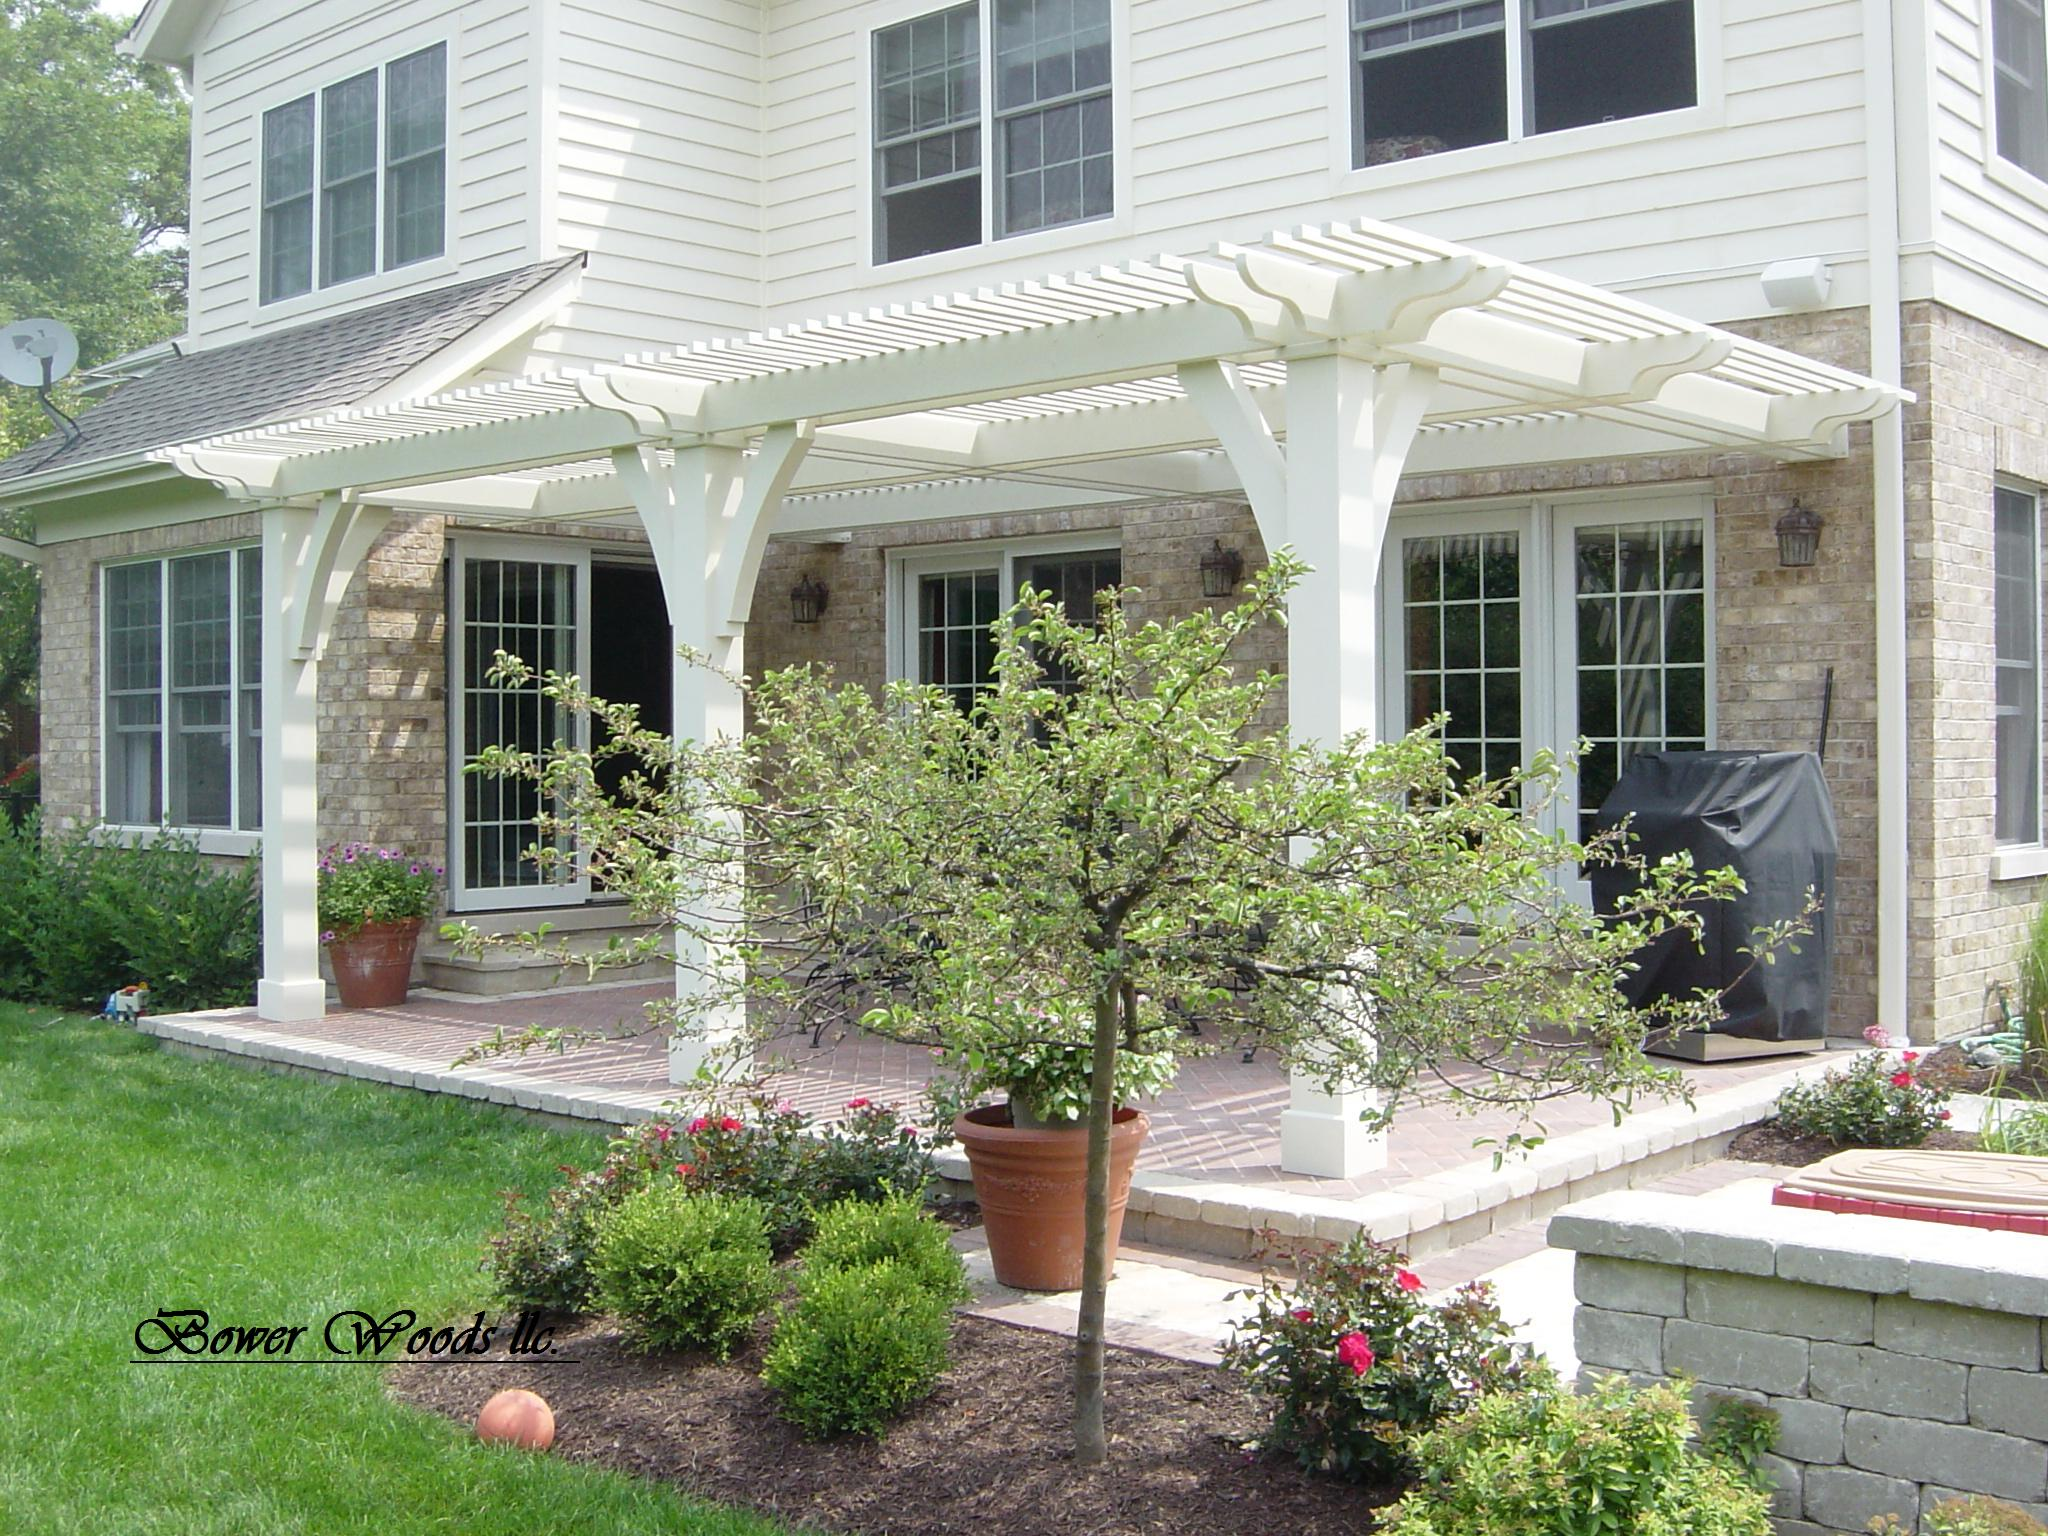 22 awesome pergola patio ideas pergola patio pergolas and white pergola